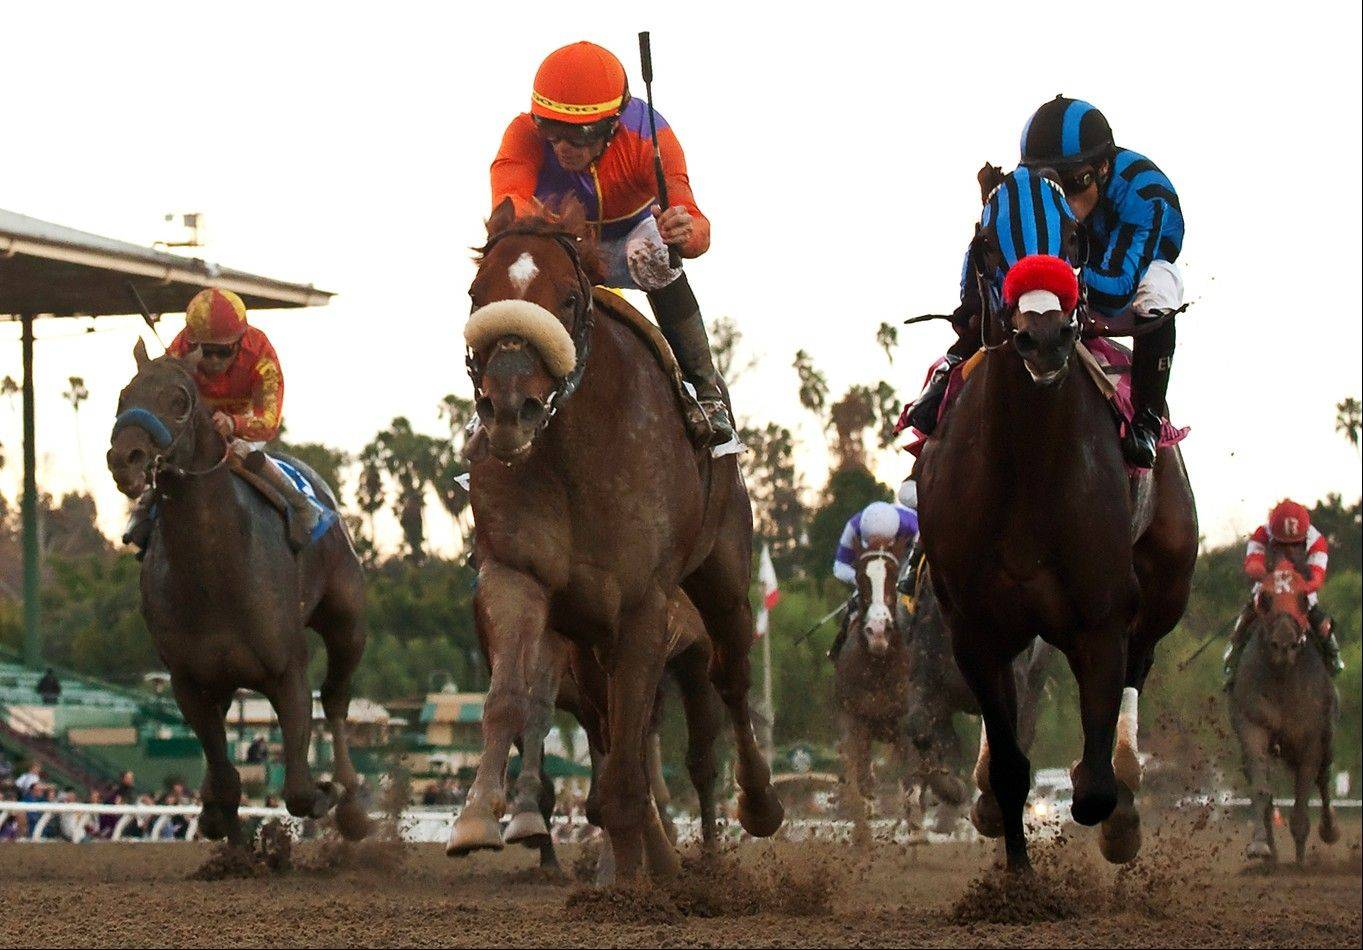 At right, Private Zone and jockey Martin Pedroza pound down the stretch in the $300,000 Malibu Stakes last December at Santa Anita Park. Spendthrift Farm's Jimmy Creed and jockey Garrett Gomez, center, won the race.